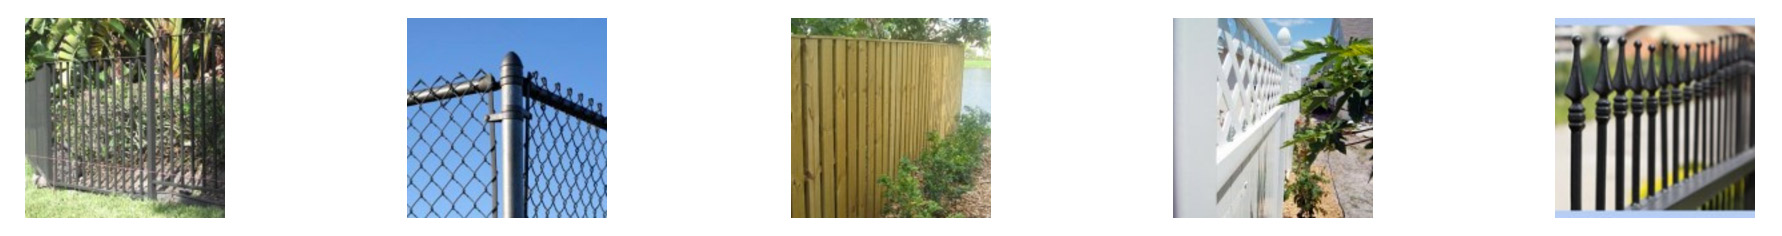 1316-residential-commercial-fences